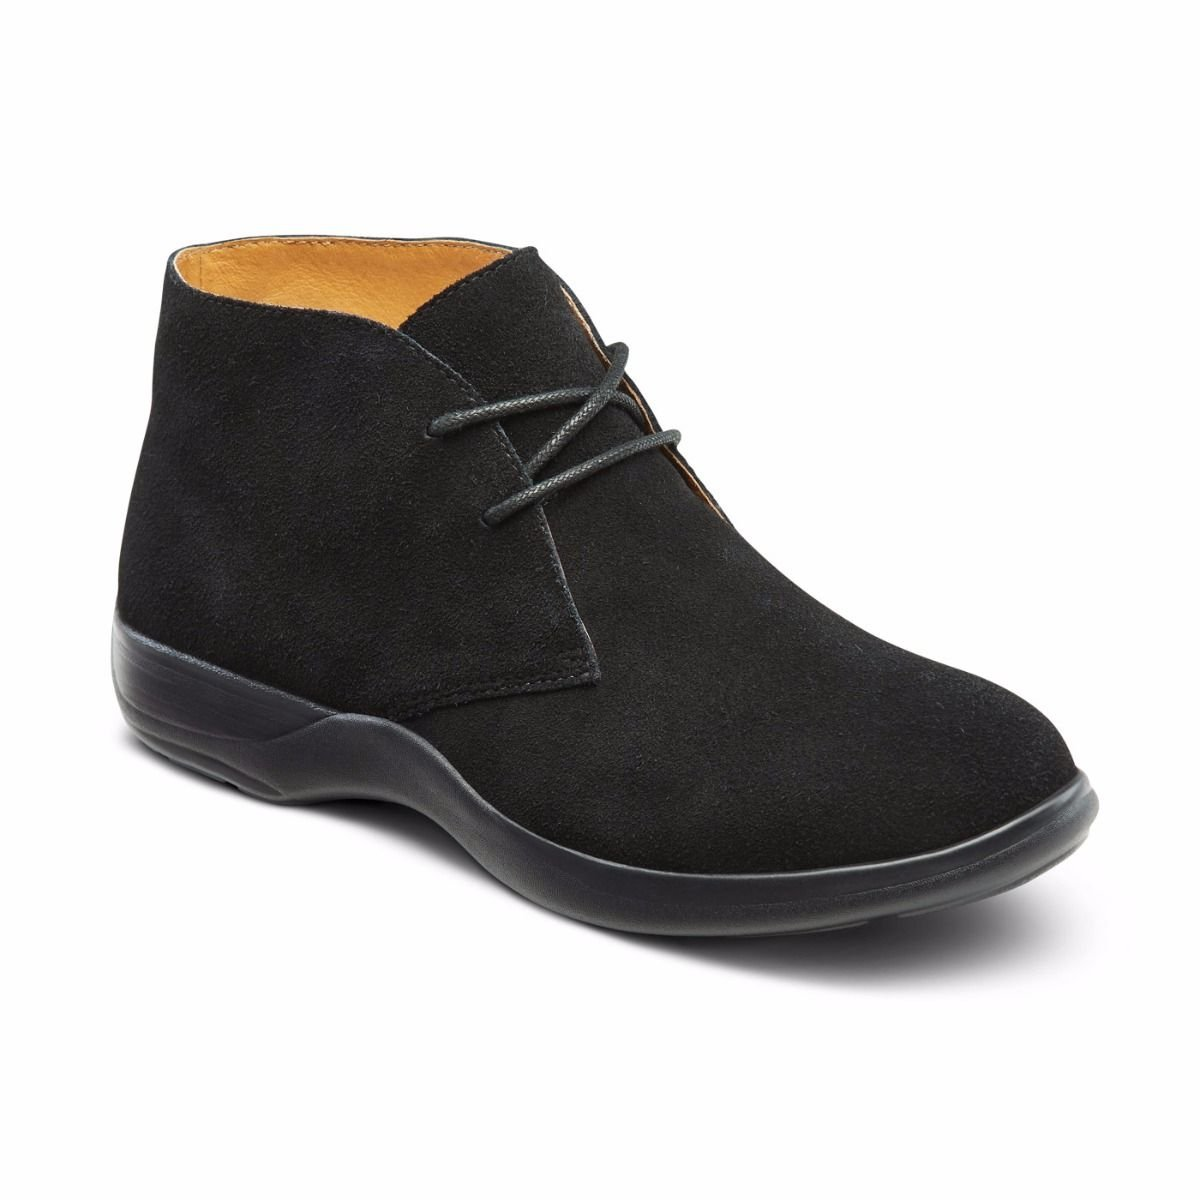 Dr. Comfort Women's Cara Casual Suede Leather Bootie Chukka Boot Black B074ZQMQNV 6 E US|Black